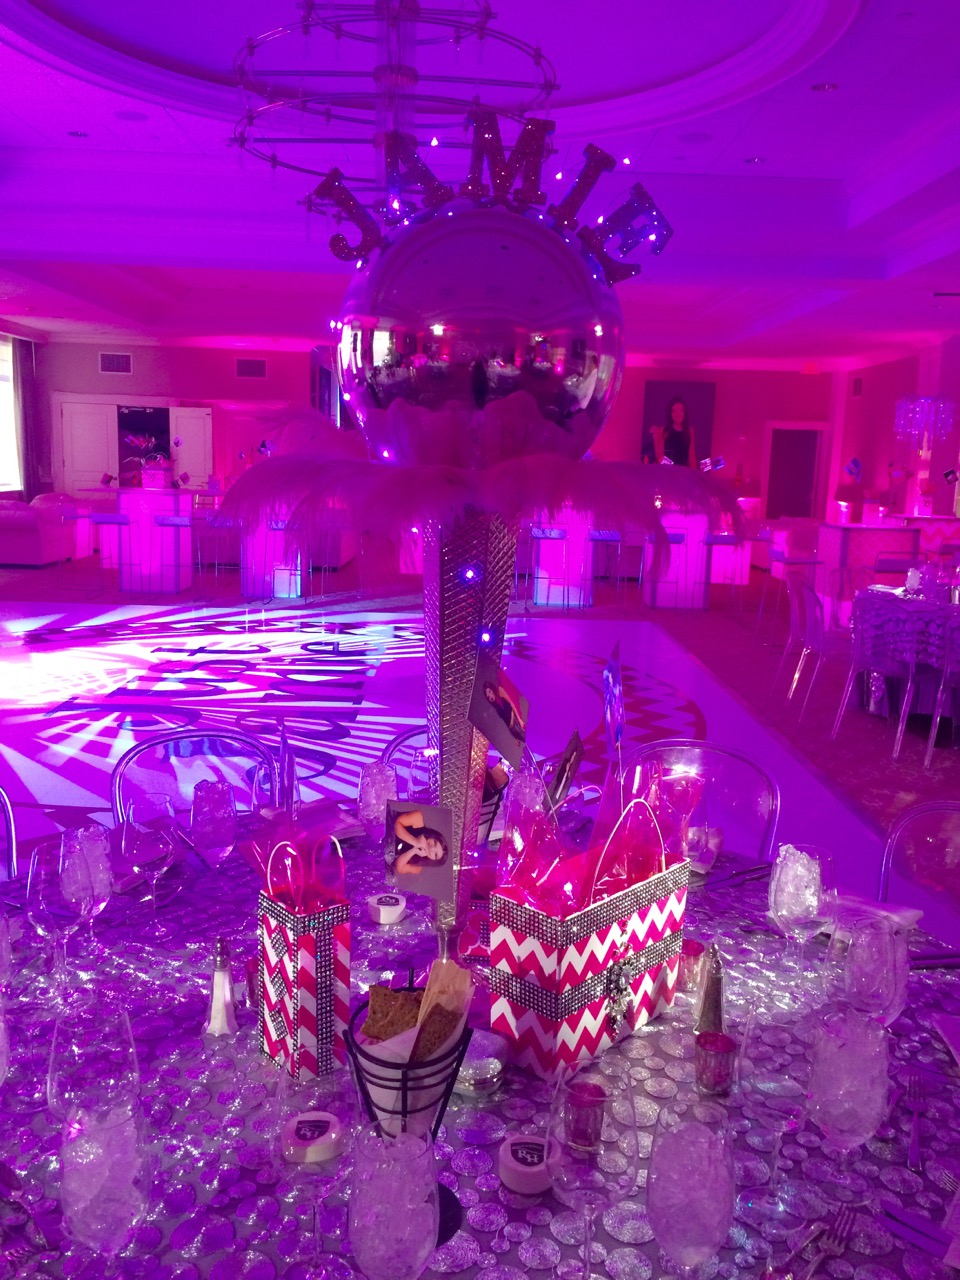 Eggsotic+Events+NJ+Event+Design+Lighting+Decor+Rental++-+6.jpg